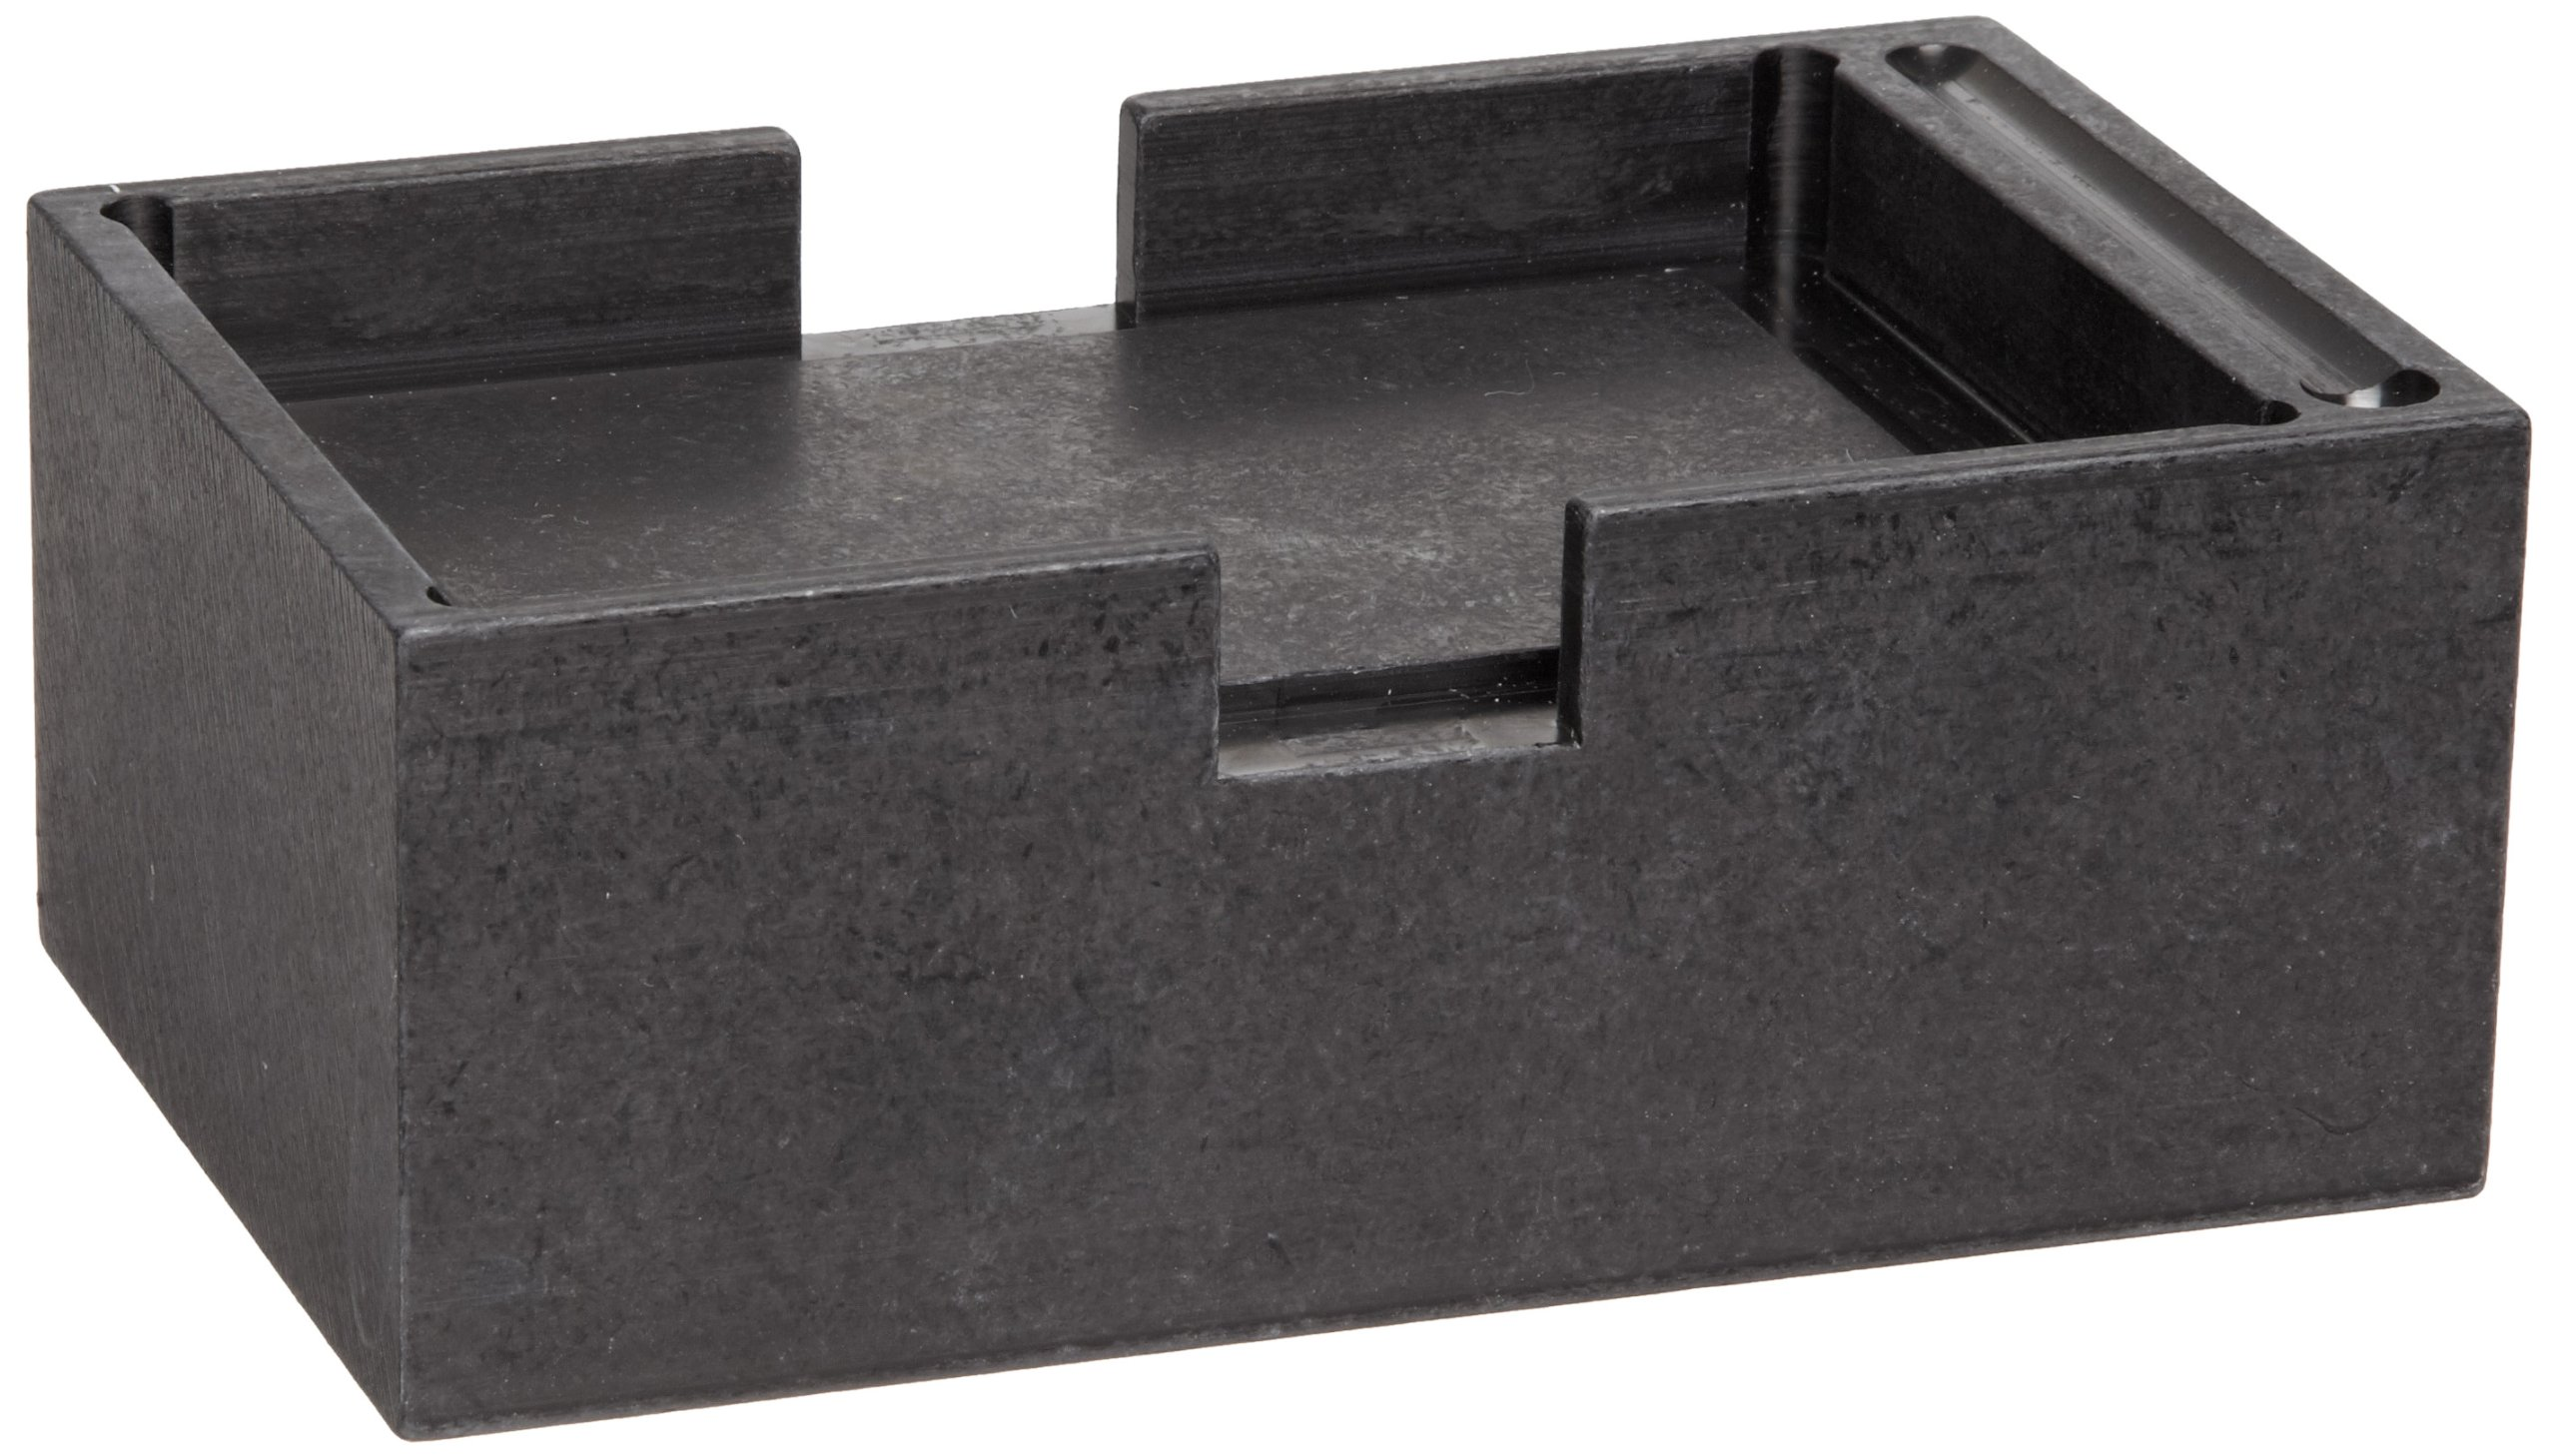 Talboys 949115 Titer Plate Heat Block, 6'' Length x 3.75'' Width x 2.25'' Height, For Block Heaters